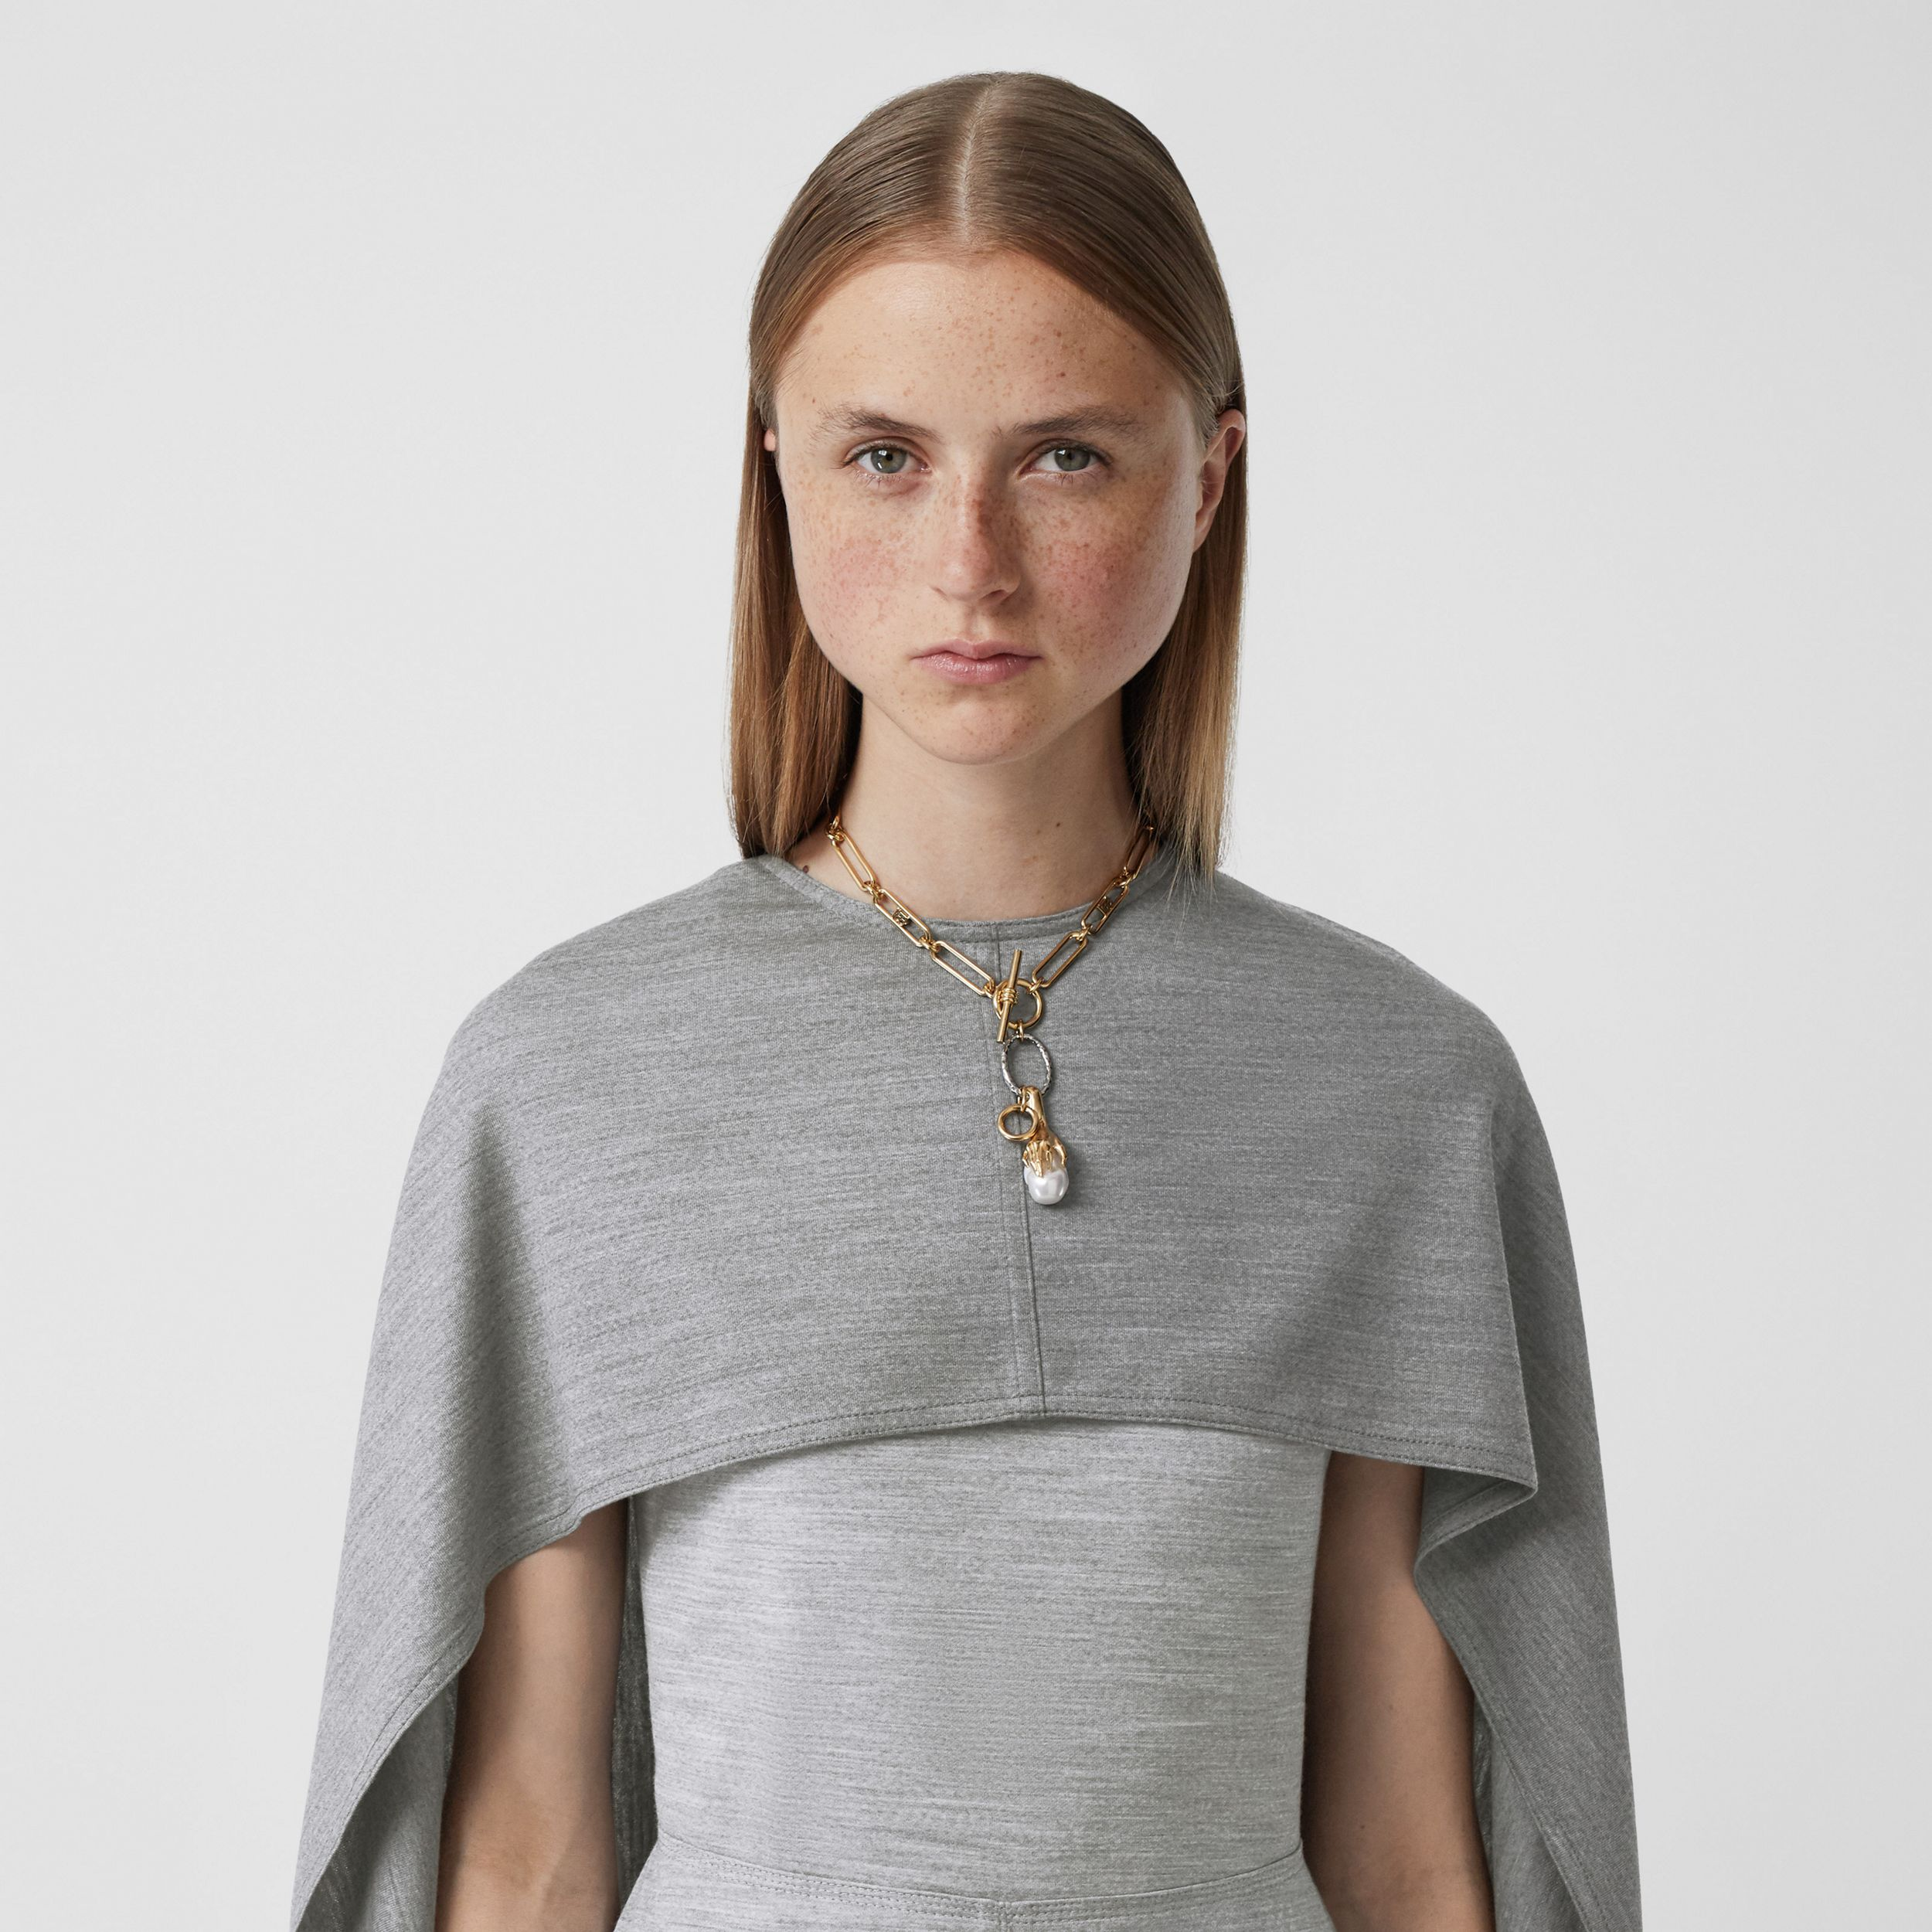 Cape Detail Technical Wool Jersey Shift Dress in Cloud Grey - Women | Burberry - 2